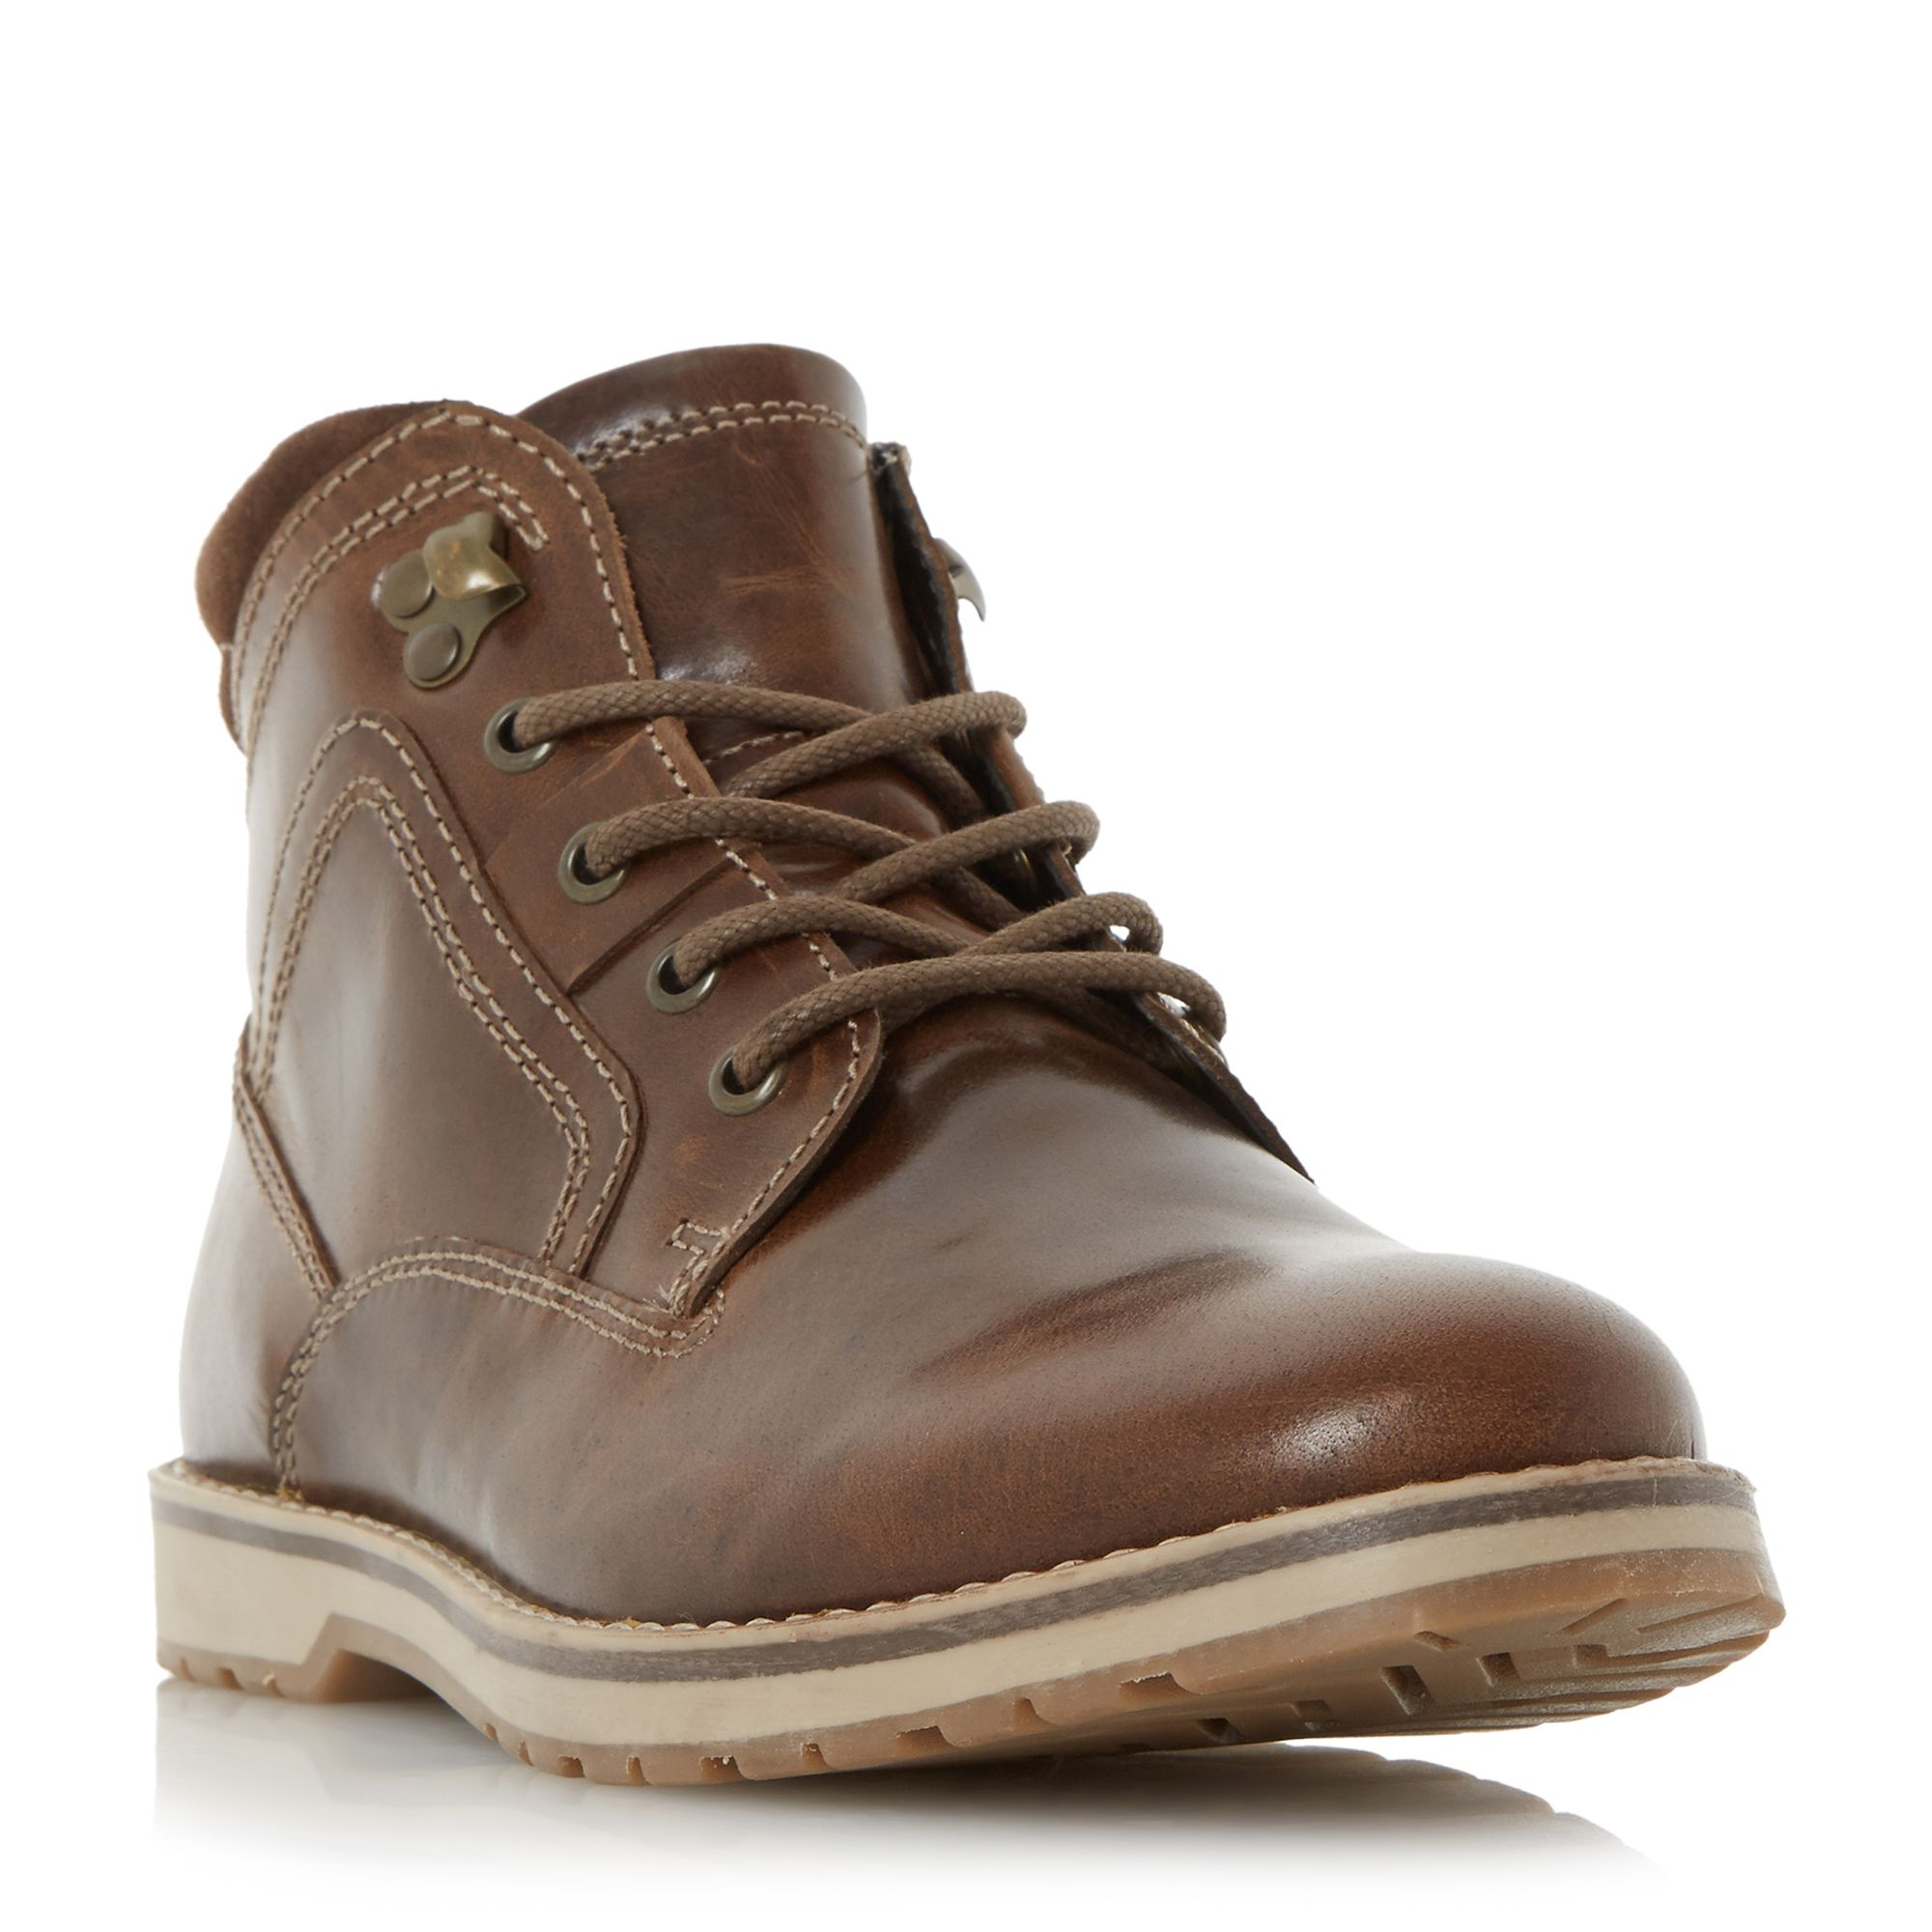 Howick Caribou ski hook lace up boots Brown